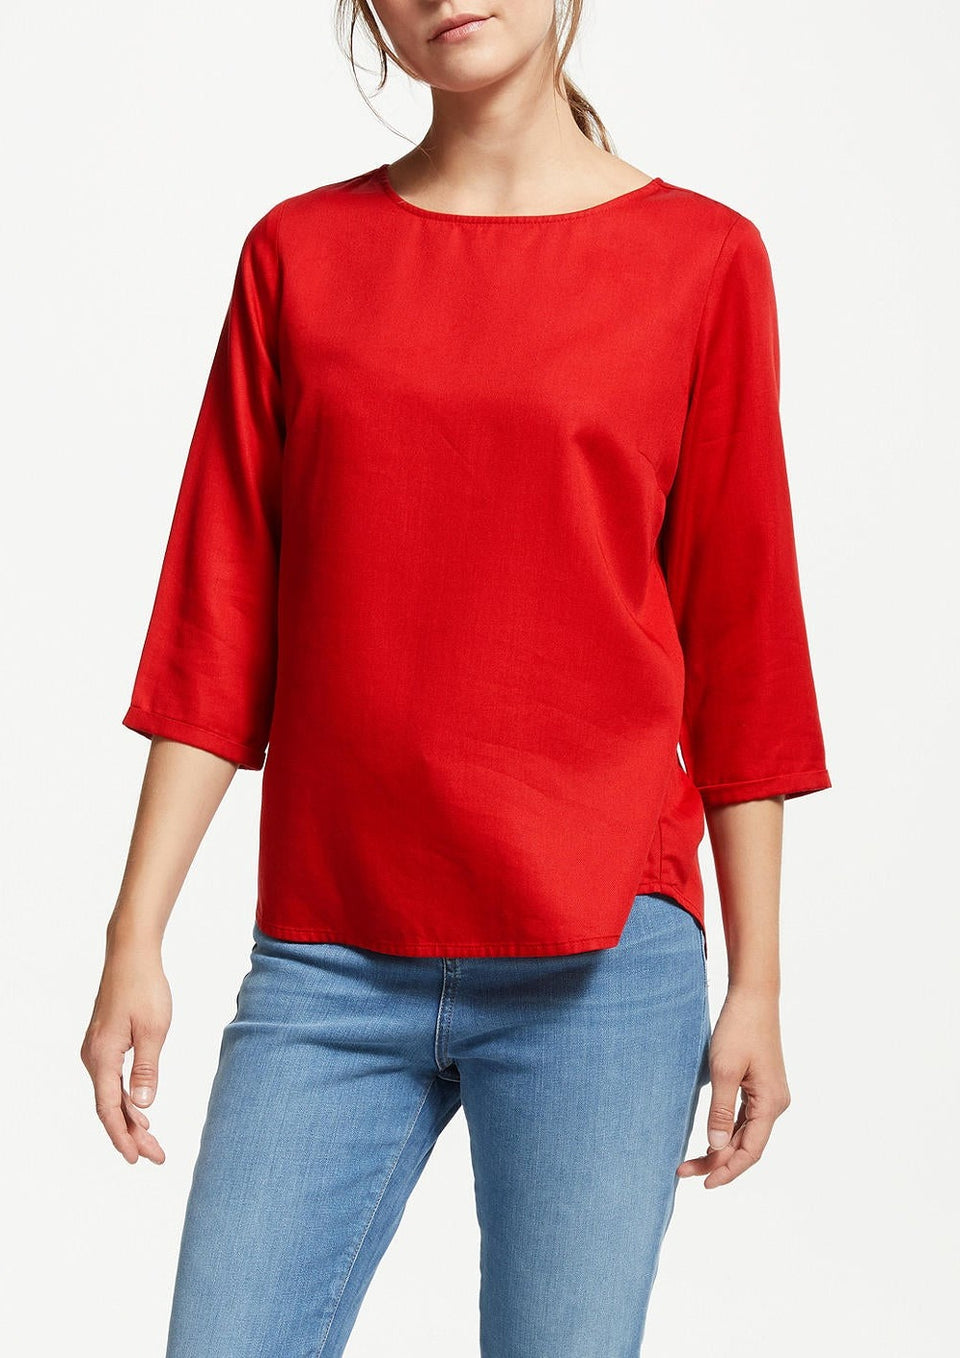 Heddaa Bow Blouse in Scarlet Red